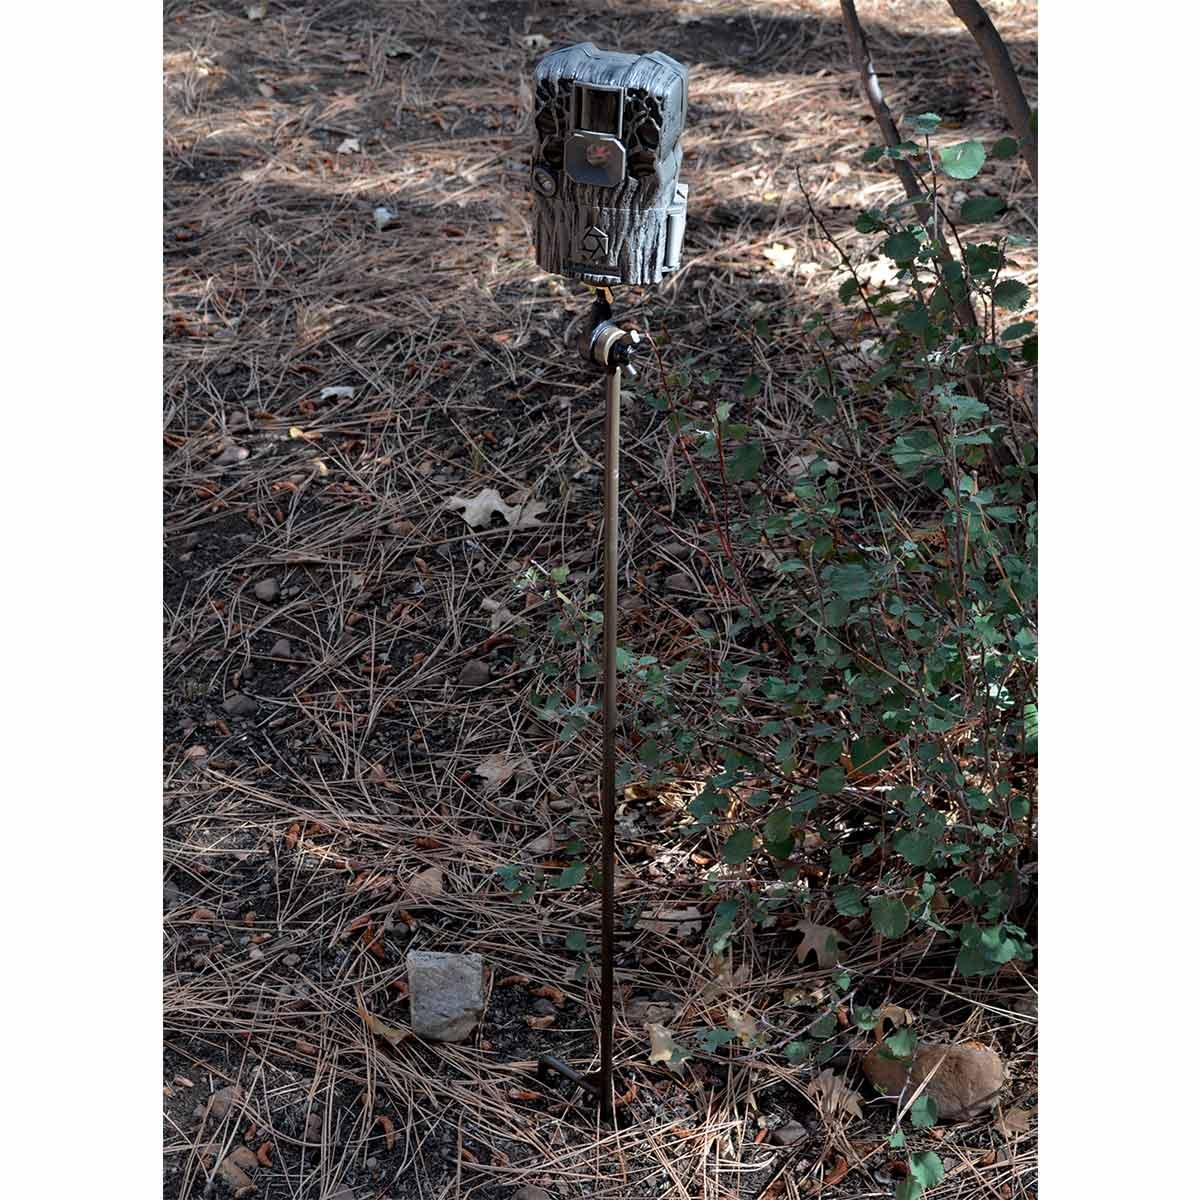 GSM HME Products T-Post Trail Camera Holder Post_1.jpg